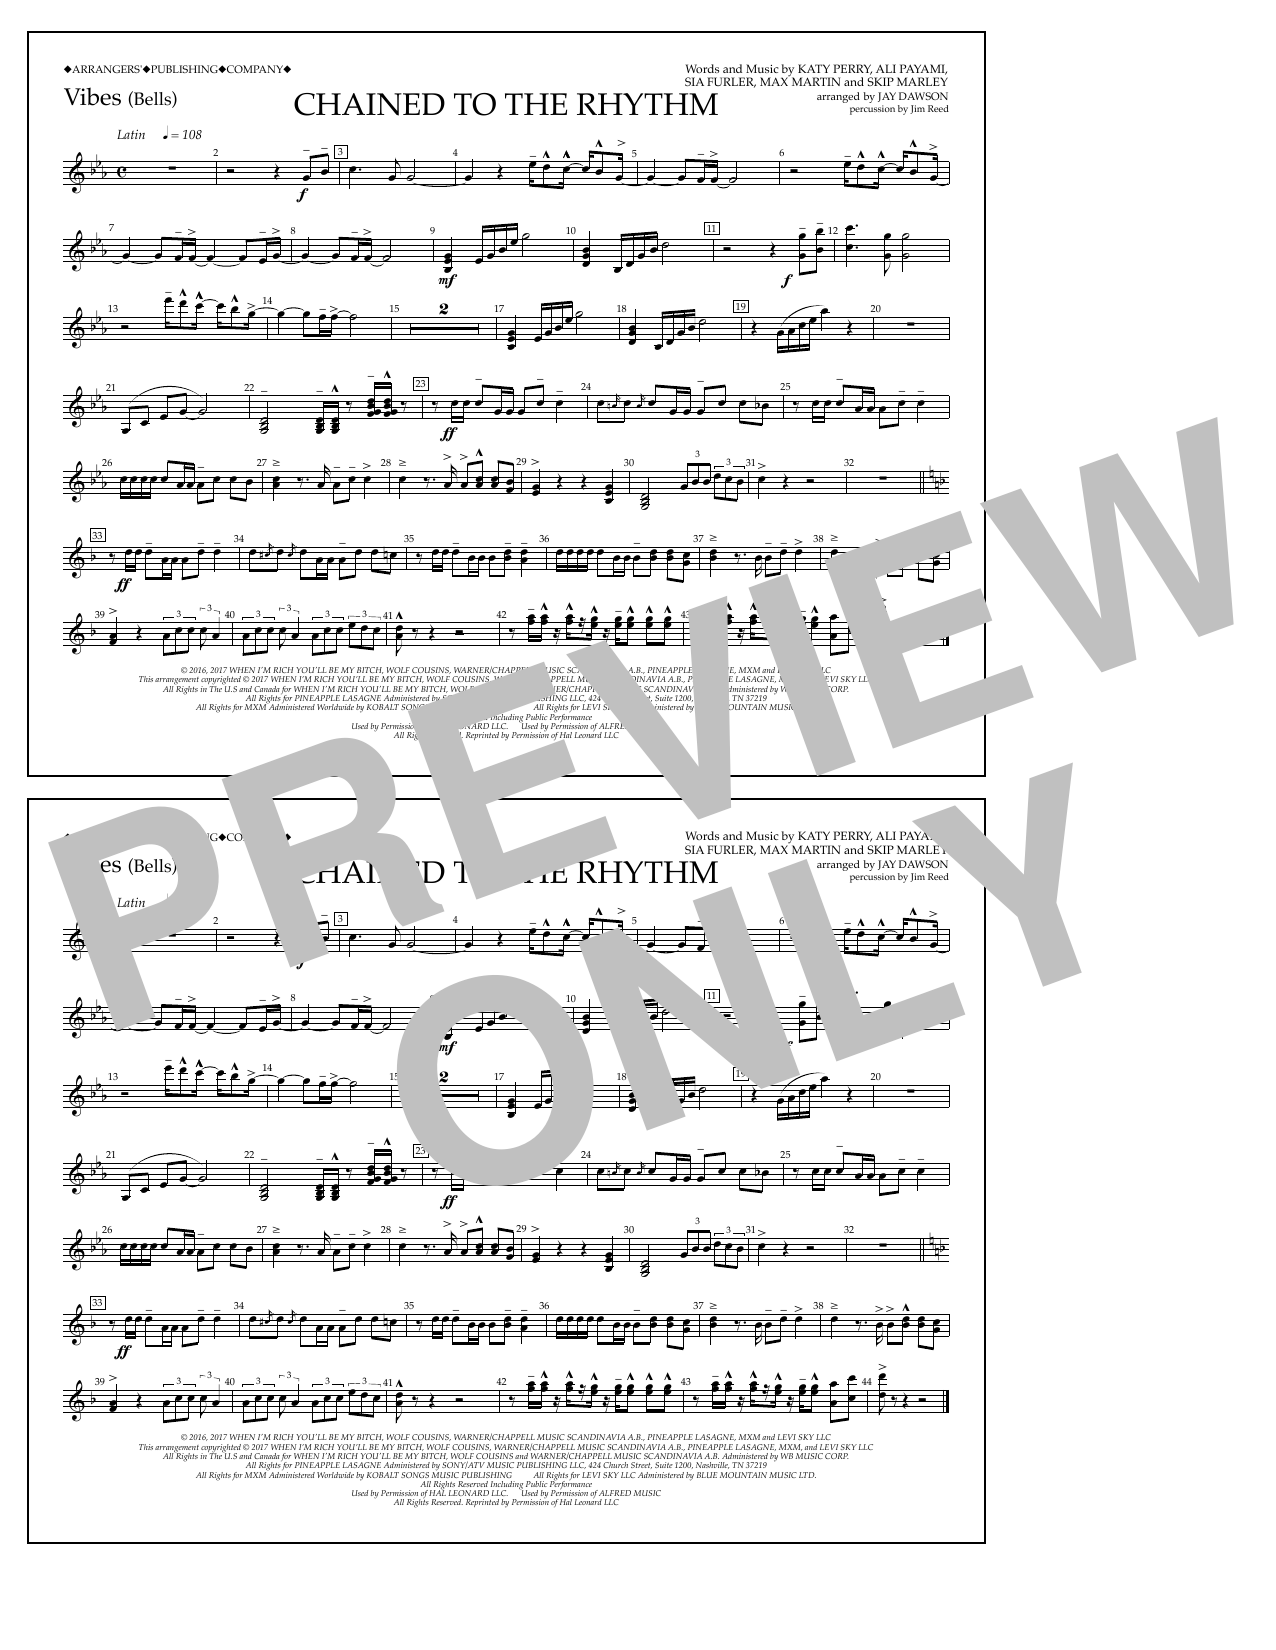 Chained to the Rhythm - Vibraphone Sheet Music